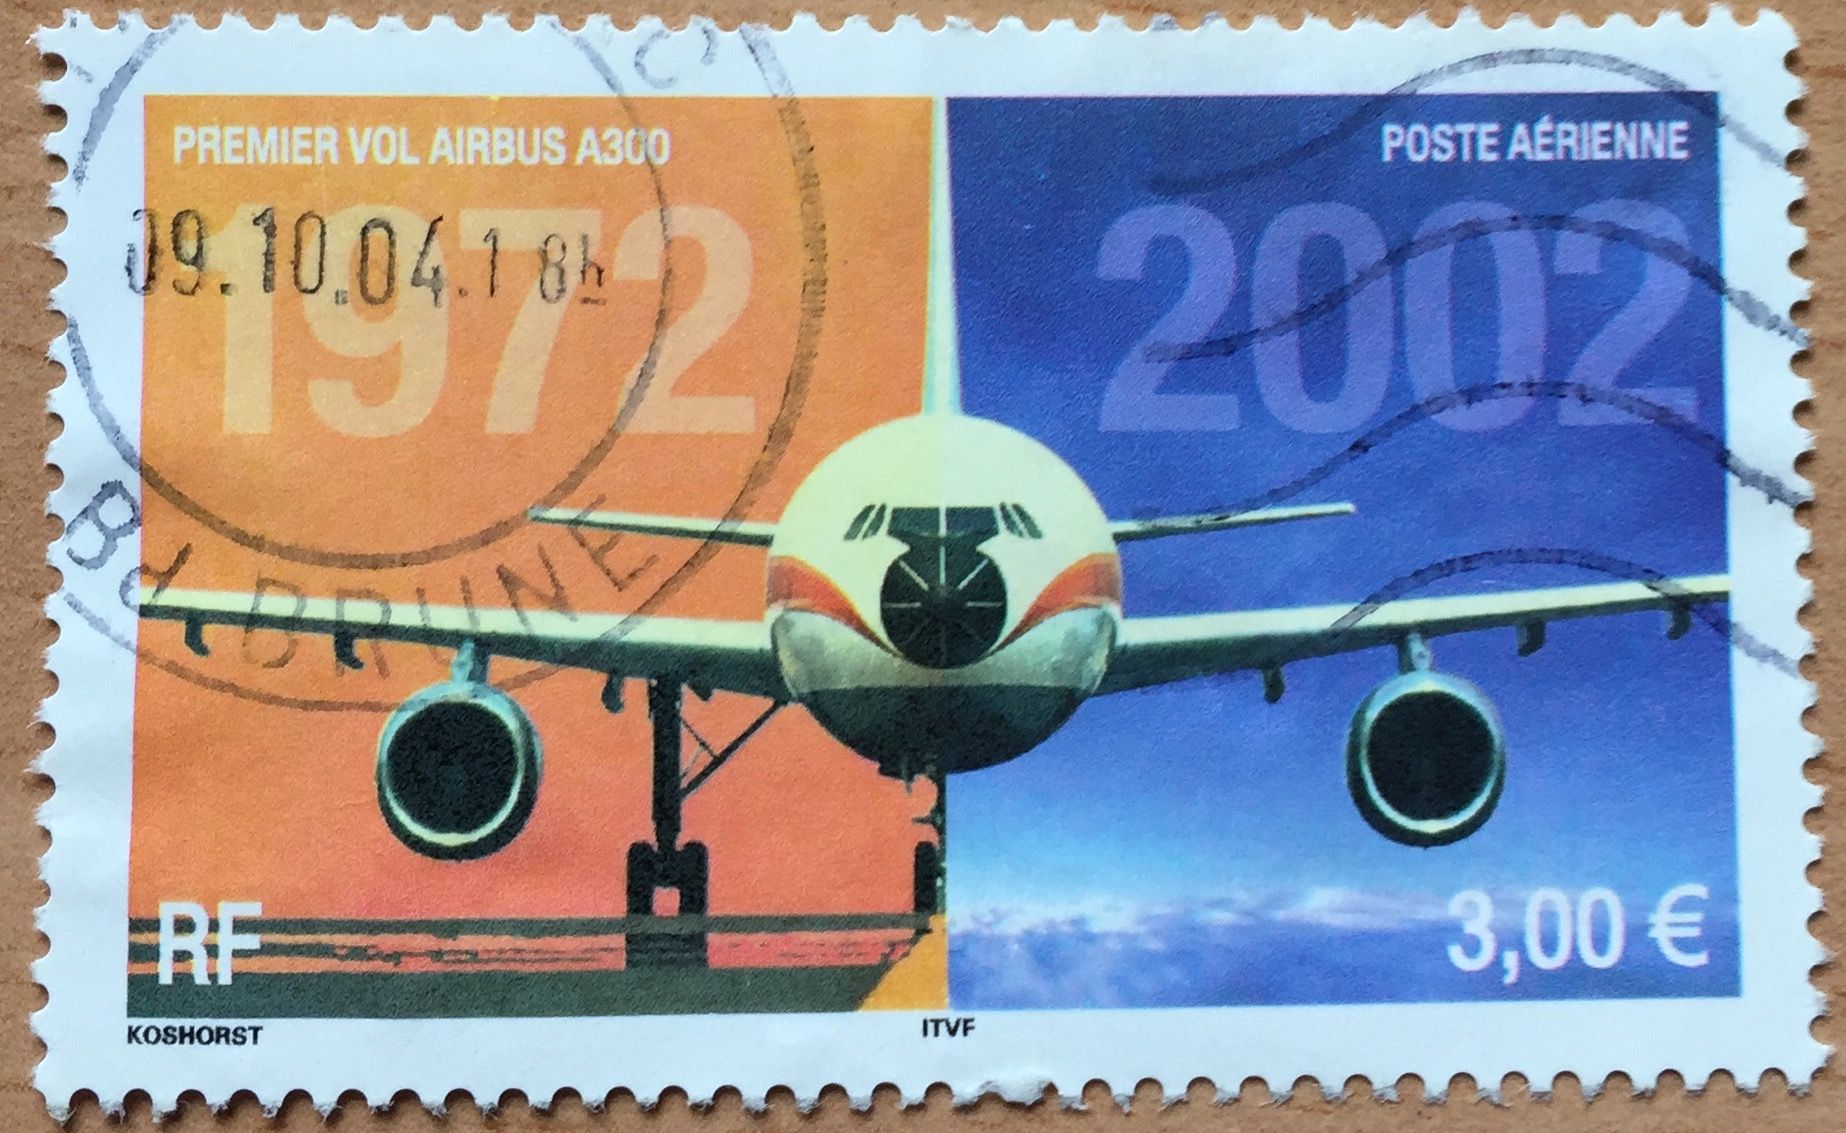 The Airbus A300, again in a French postal stamp of 2002. This time already priced in Euros and celebrating 30 years of the introduction of the first of Airbus airliners.